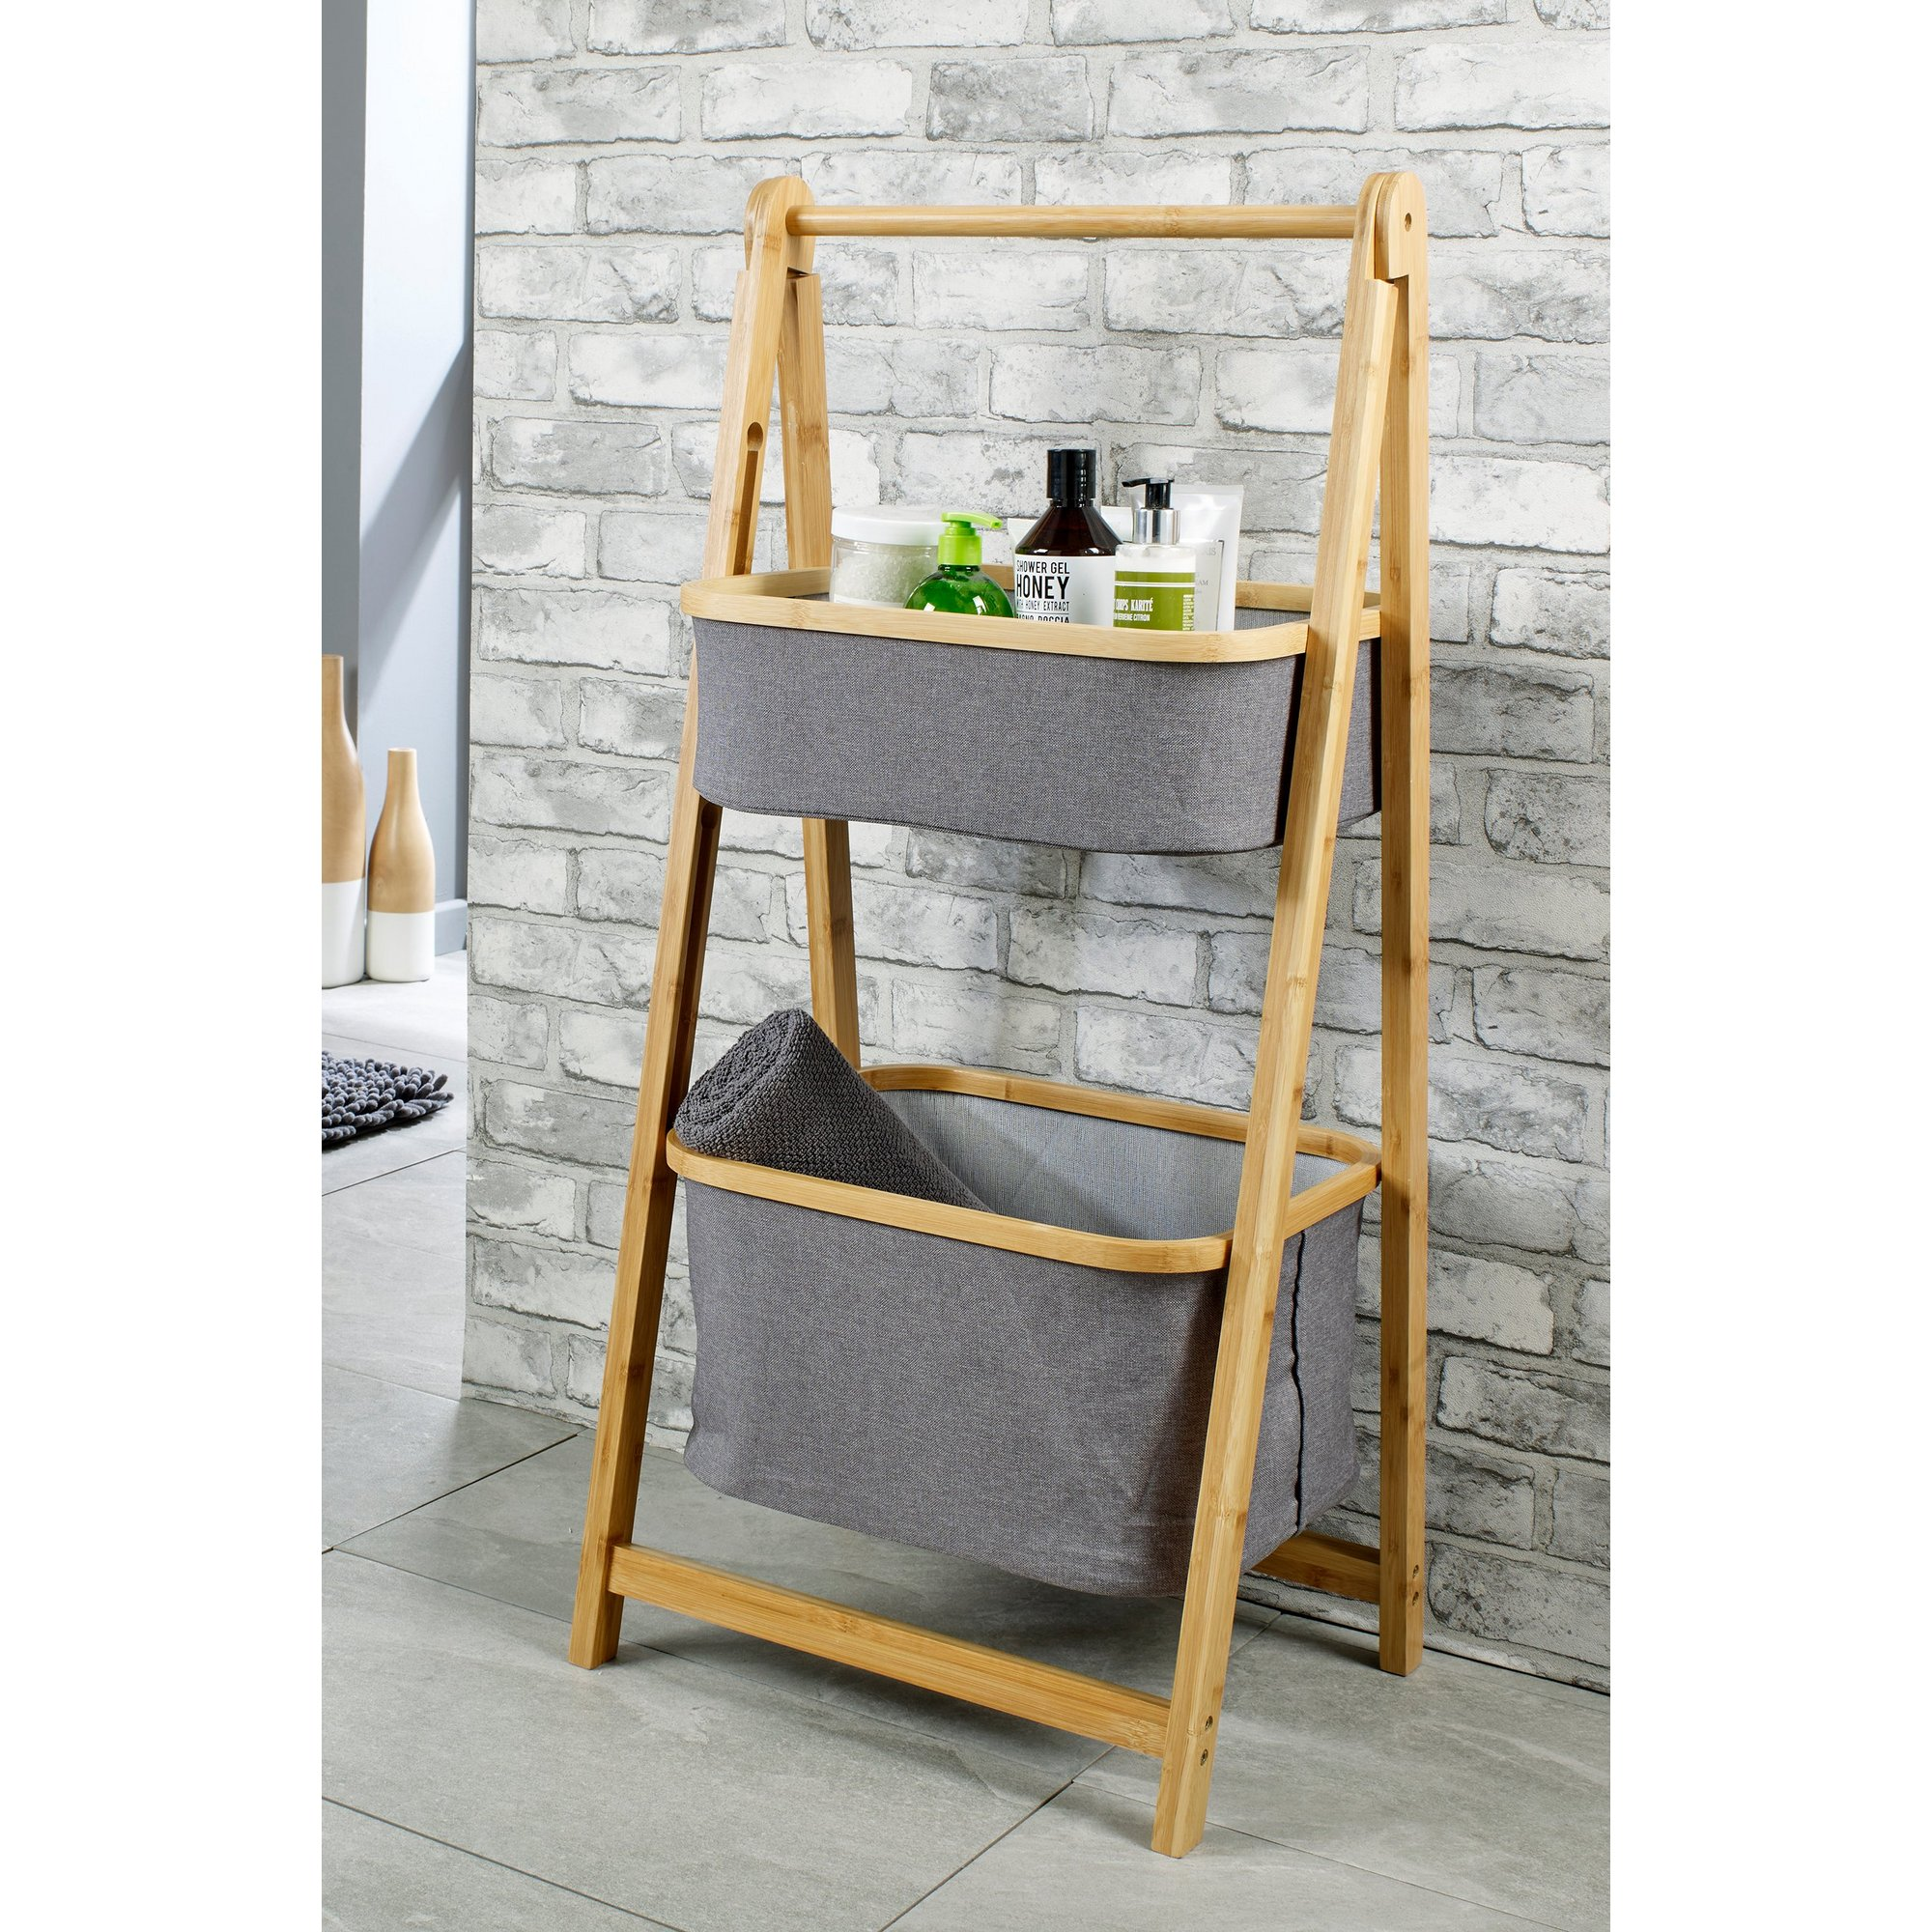 Image of Bamboo 2 Tier Ladder Shelving